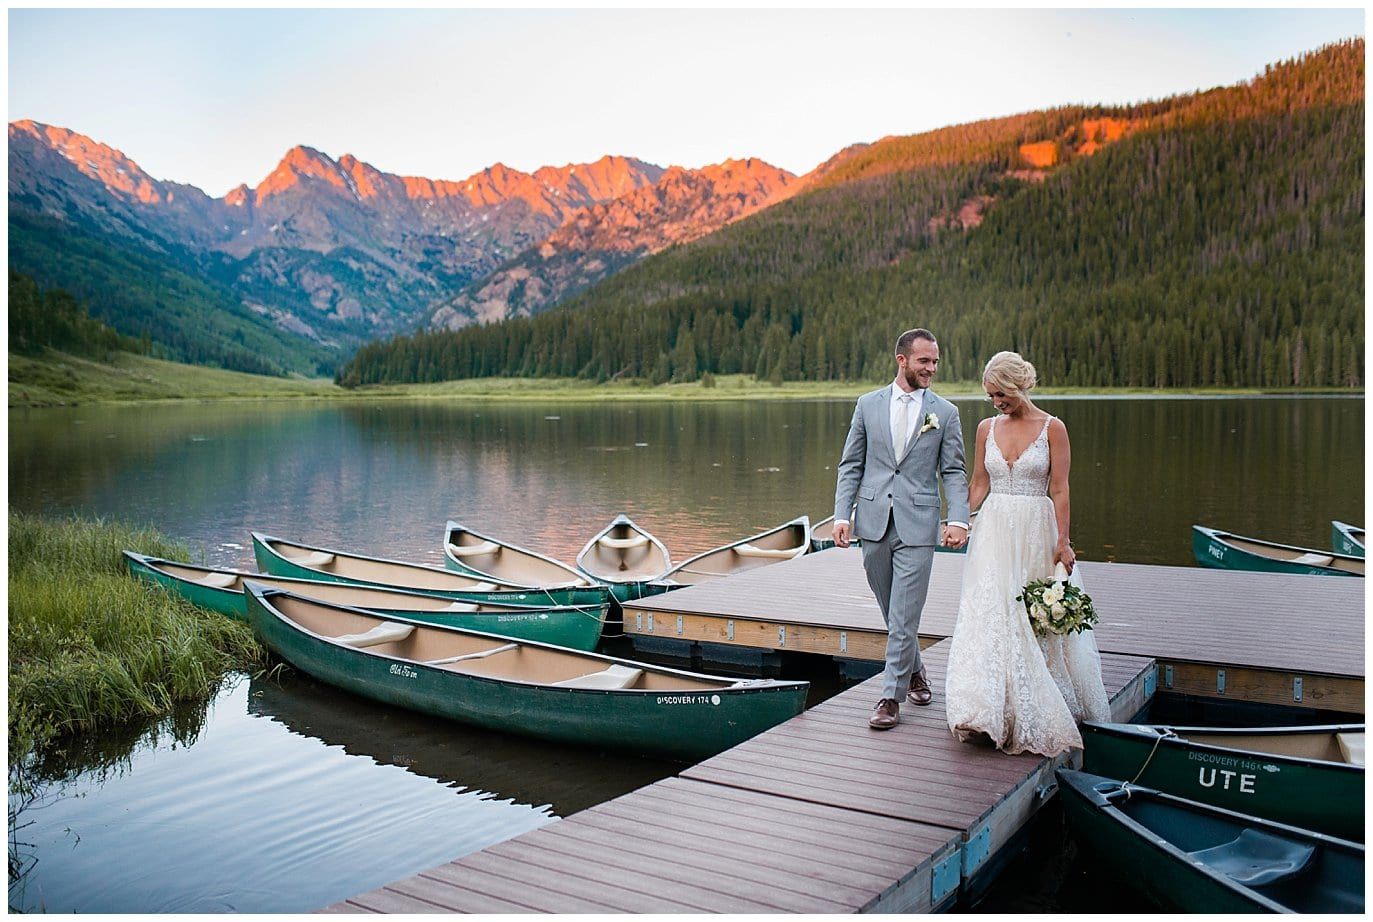 bride and groom walk on dock during sunset alpenglow at Piney River Ranch wedding by Vail wedding photographer Jennie Crate, Photographer